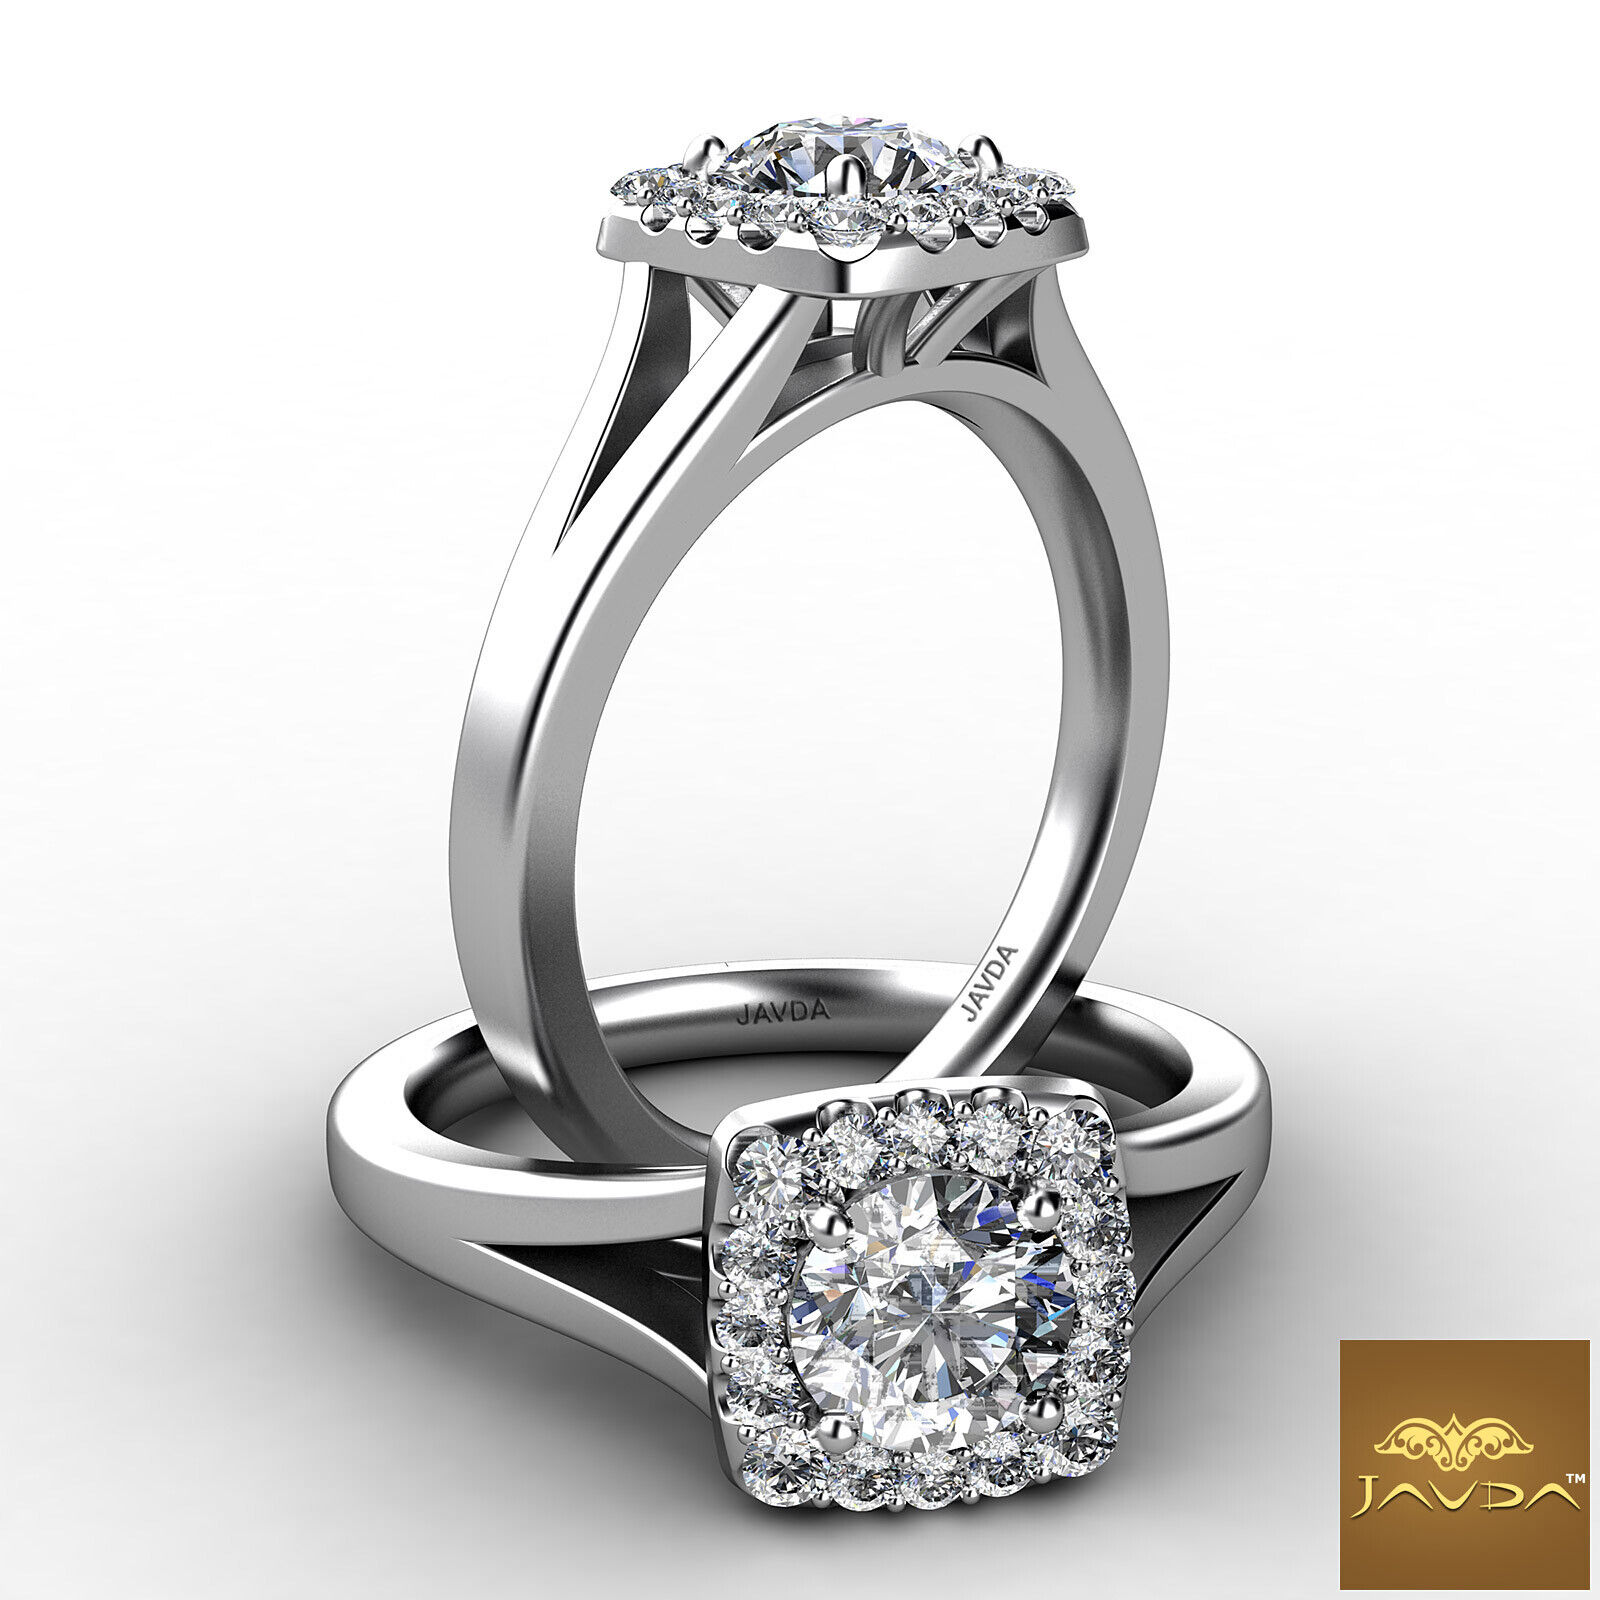 1.1ctw Halo Split Shank Cathedral Round Diamond Engagement Ring GIA H-VS2 W Gold